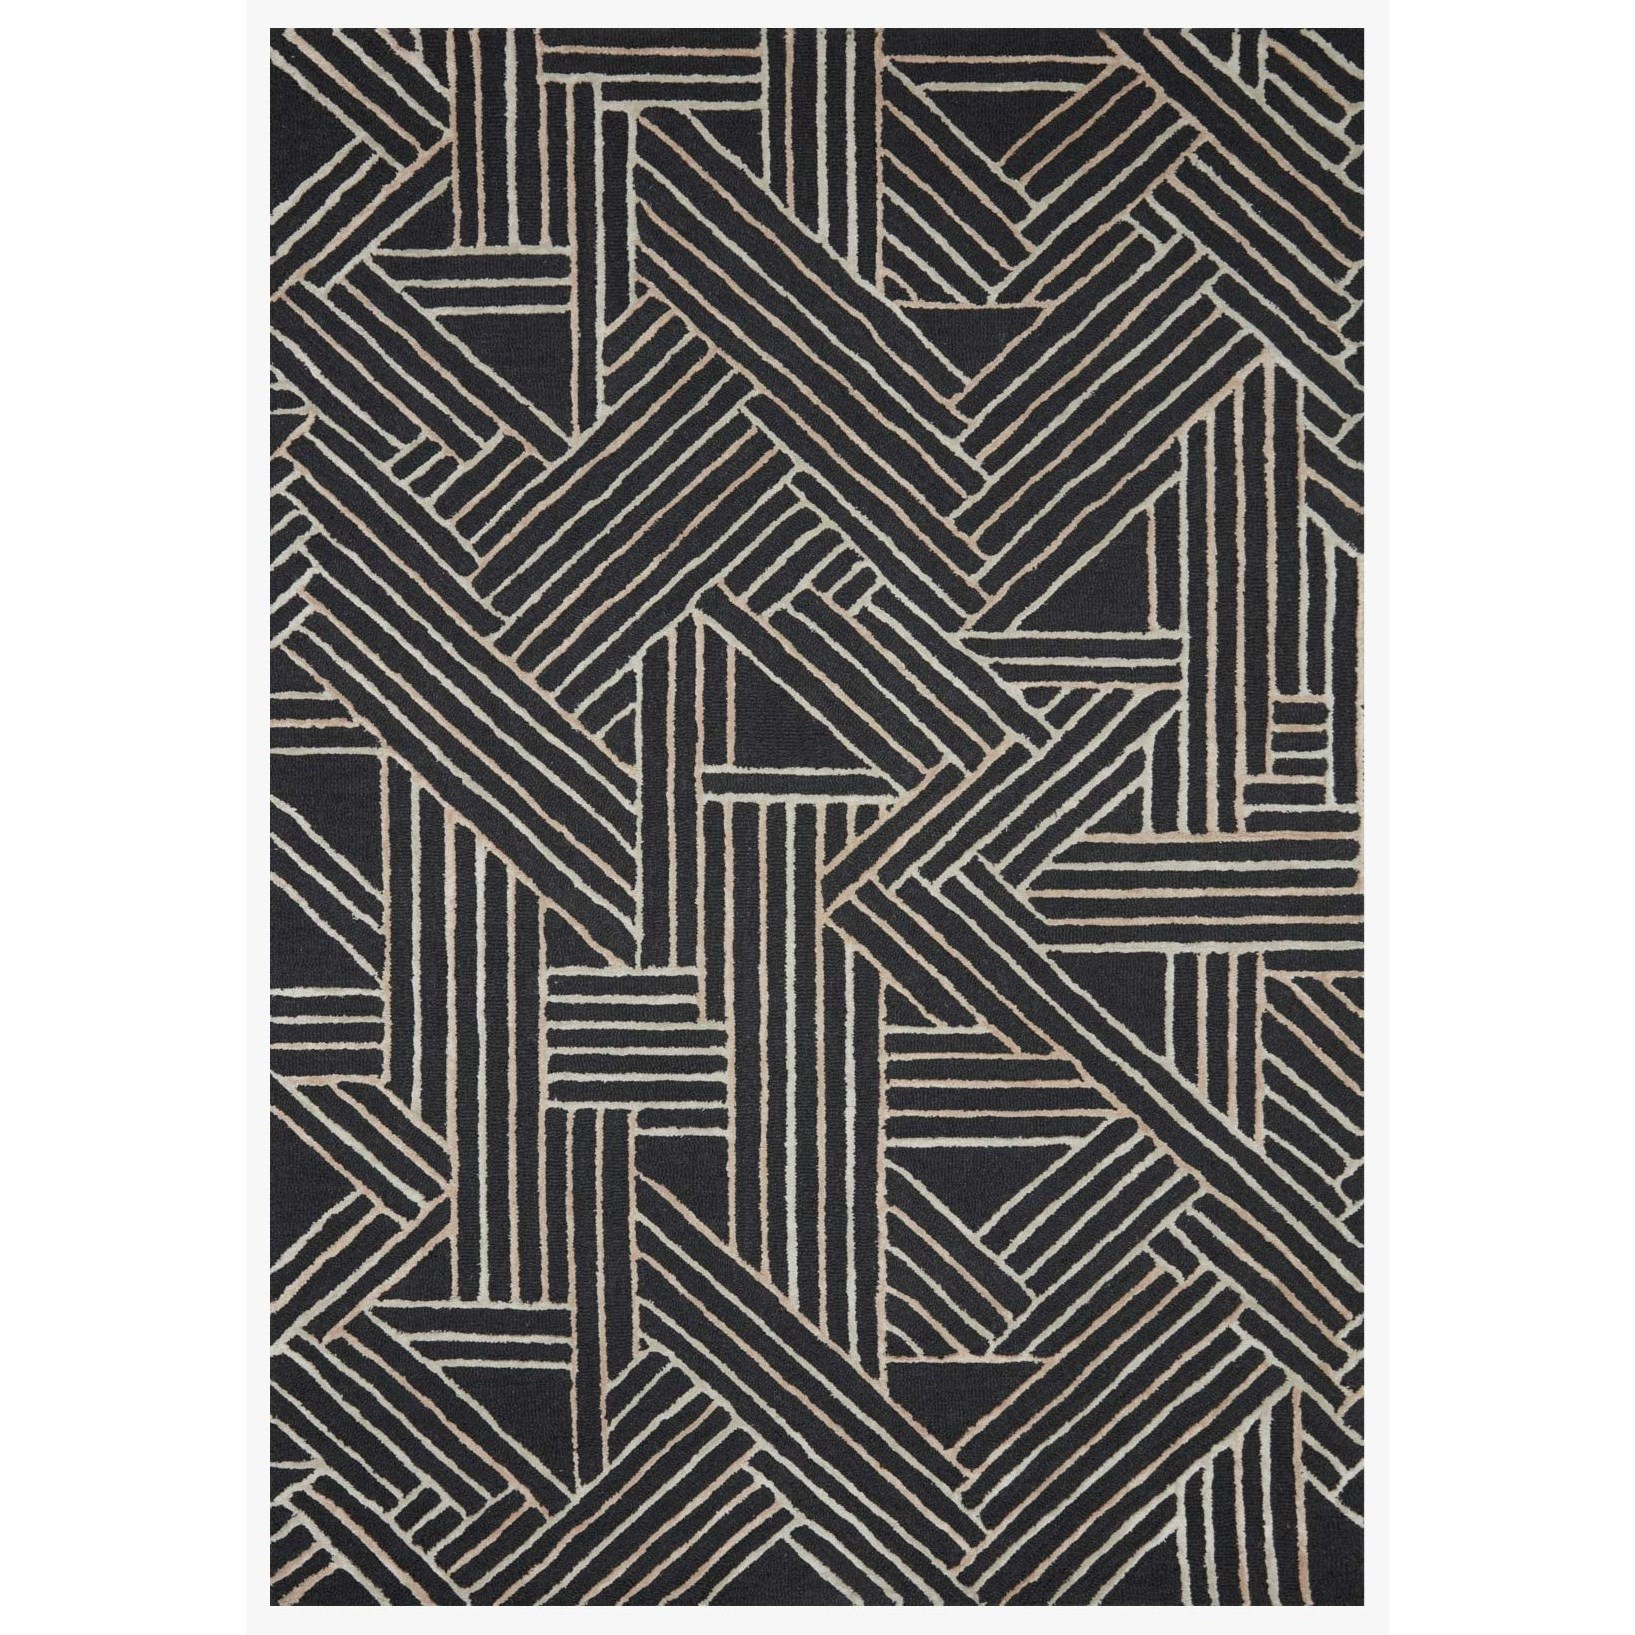 """Verve 5'0"""" x 7'6"""" Charcoal / Neutral Rug by Loloi Rugs at Virginia Furniture Market"""